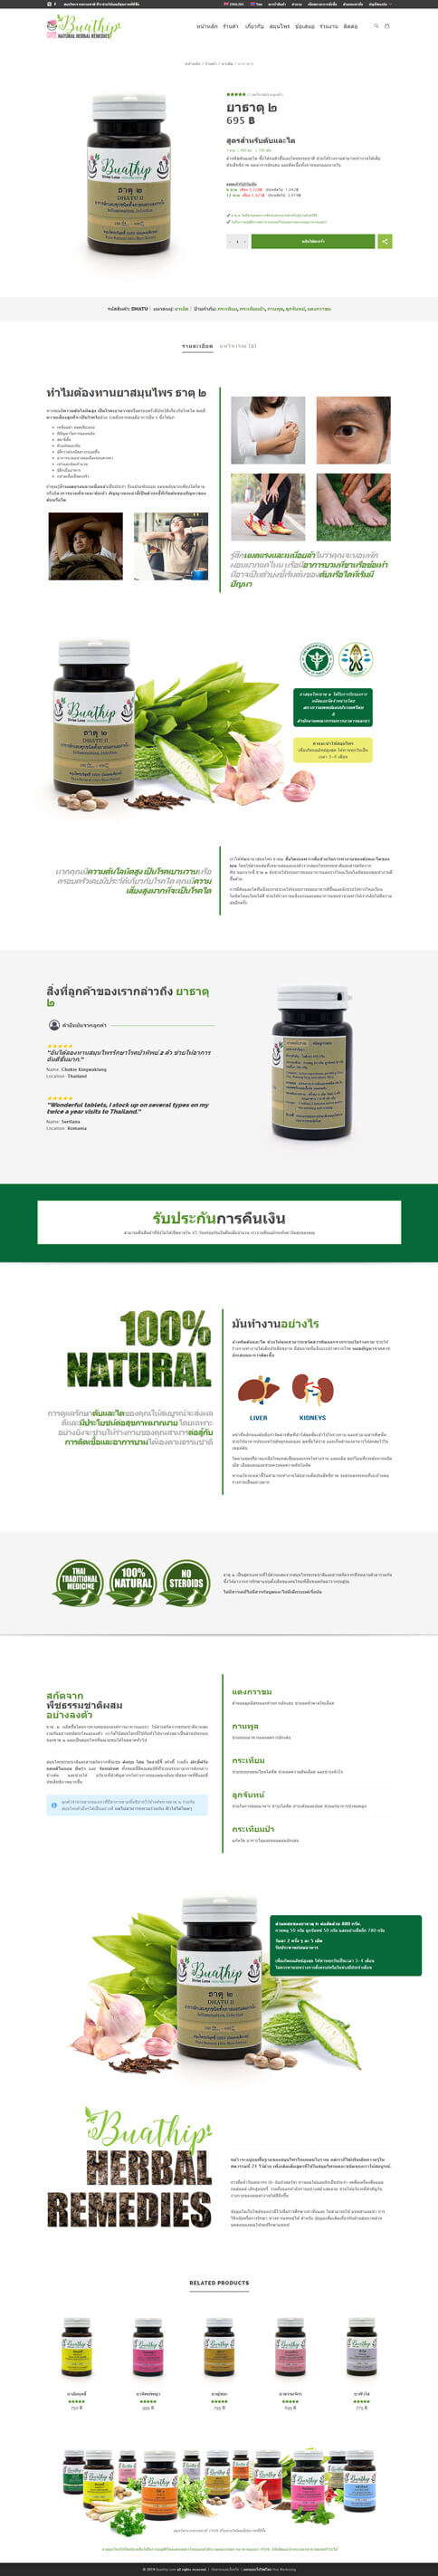 Ecommerce Product Dhatu II Thai Language Version